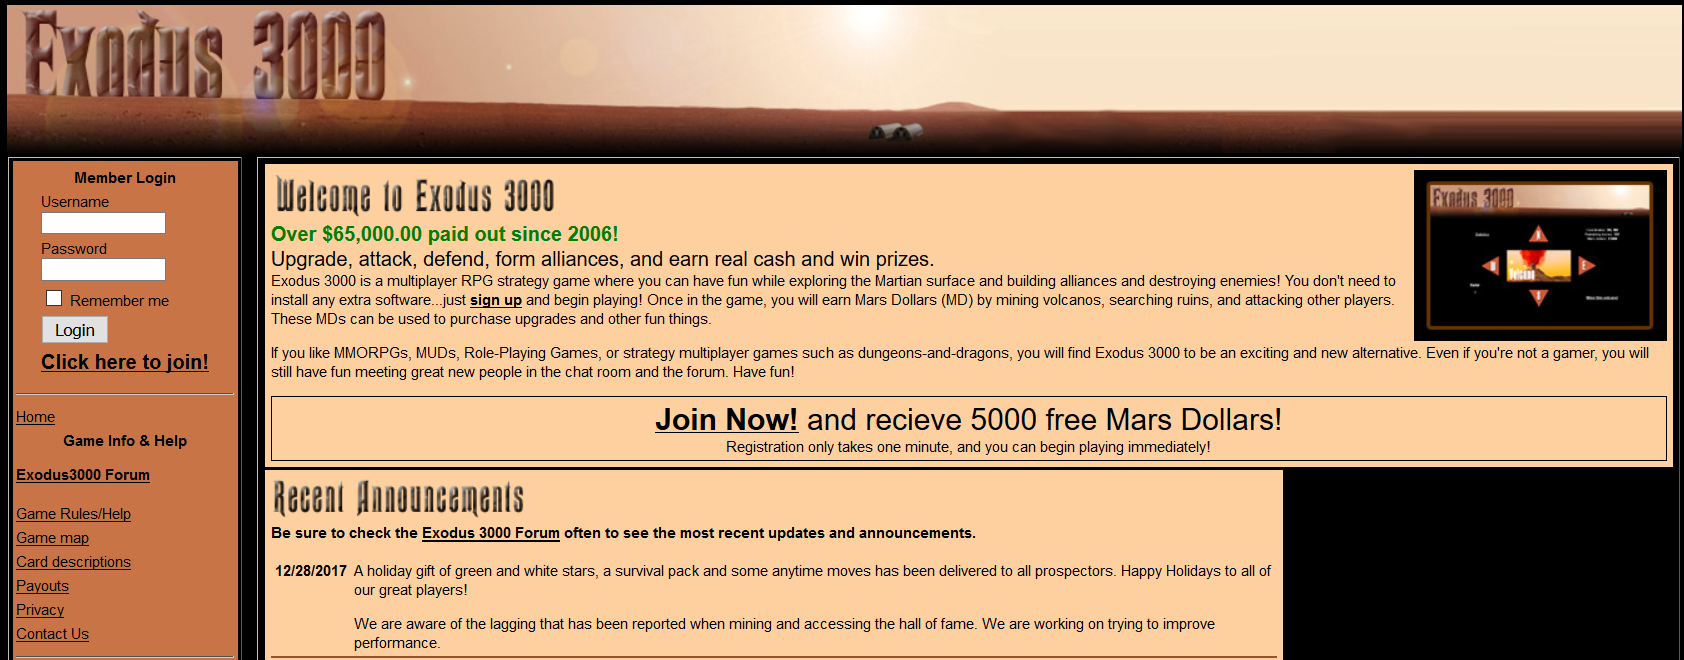 New casino free spins no deposit 2020